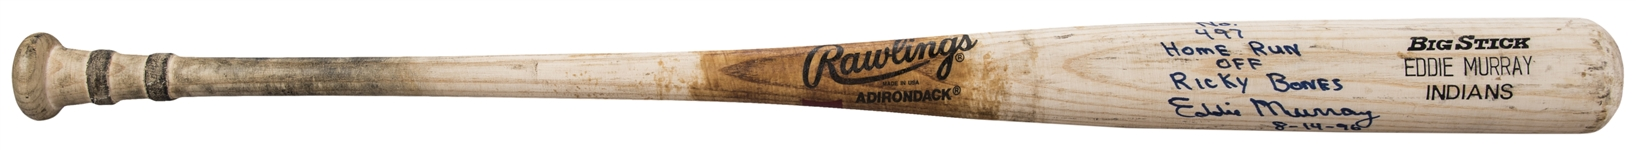 1995-96 Eddie Murray Game Used, Signed & Inscribed Rawlings 456A Model Bat Used To Hit Career Home Run #497 On 8/14/96 (PSA/DNA GU 10, Beckett & Murray LOA)